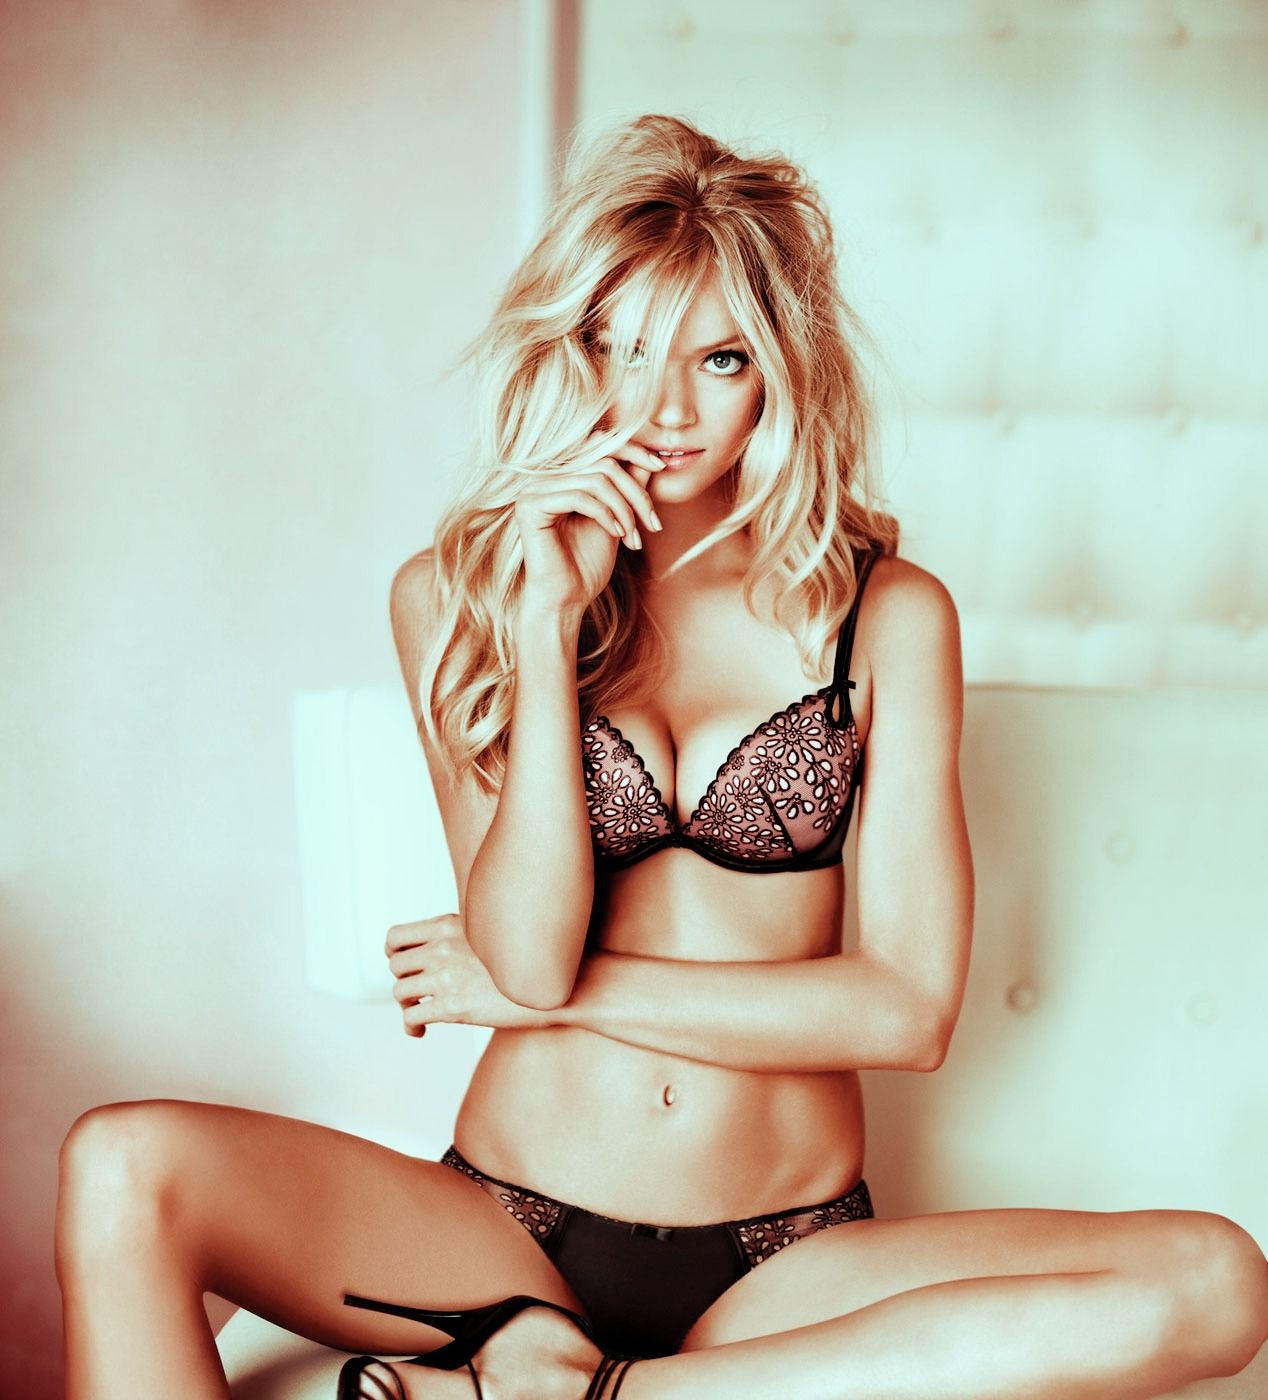 Lindsay Ellingson hot on actressbrasize.com  http://actressbrasize.com/2014/07/05/lindsay-ellingson-bra-size-body-measurements/